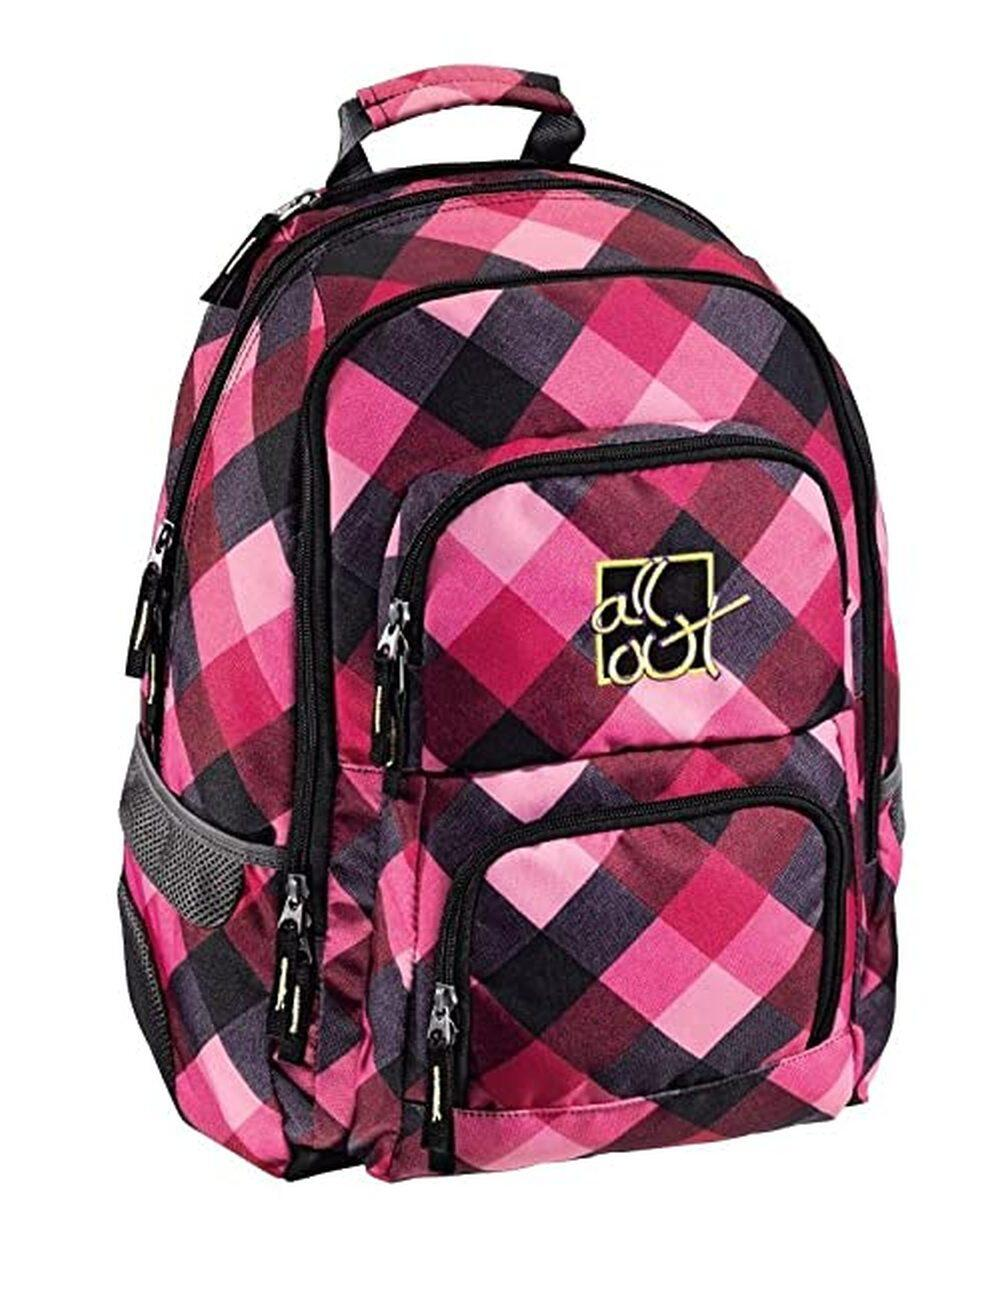 All Out Rucksack Louth Diamond Check